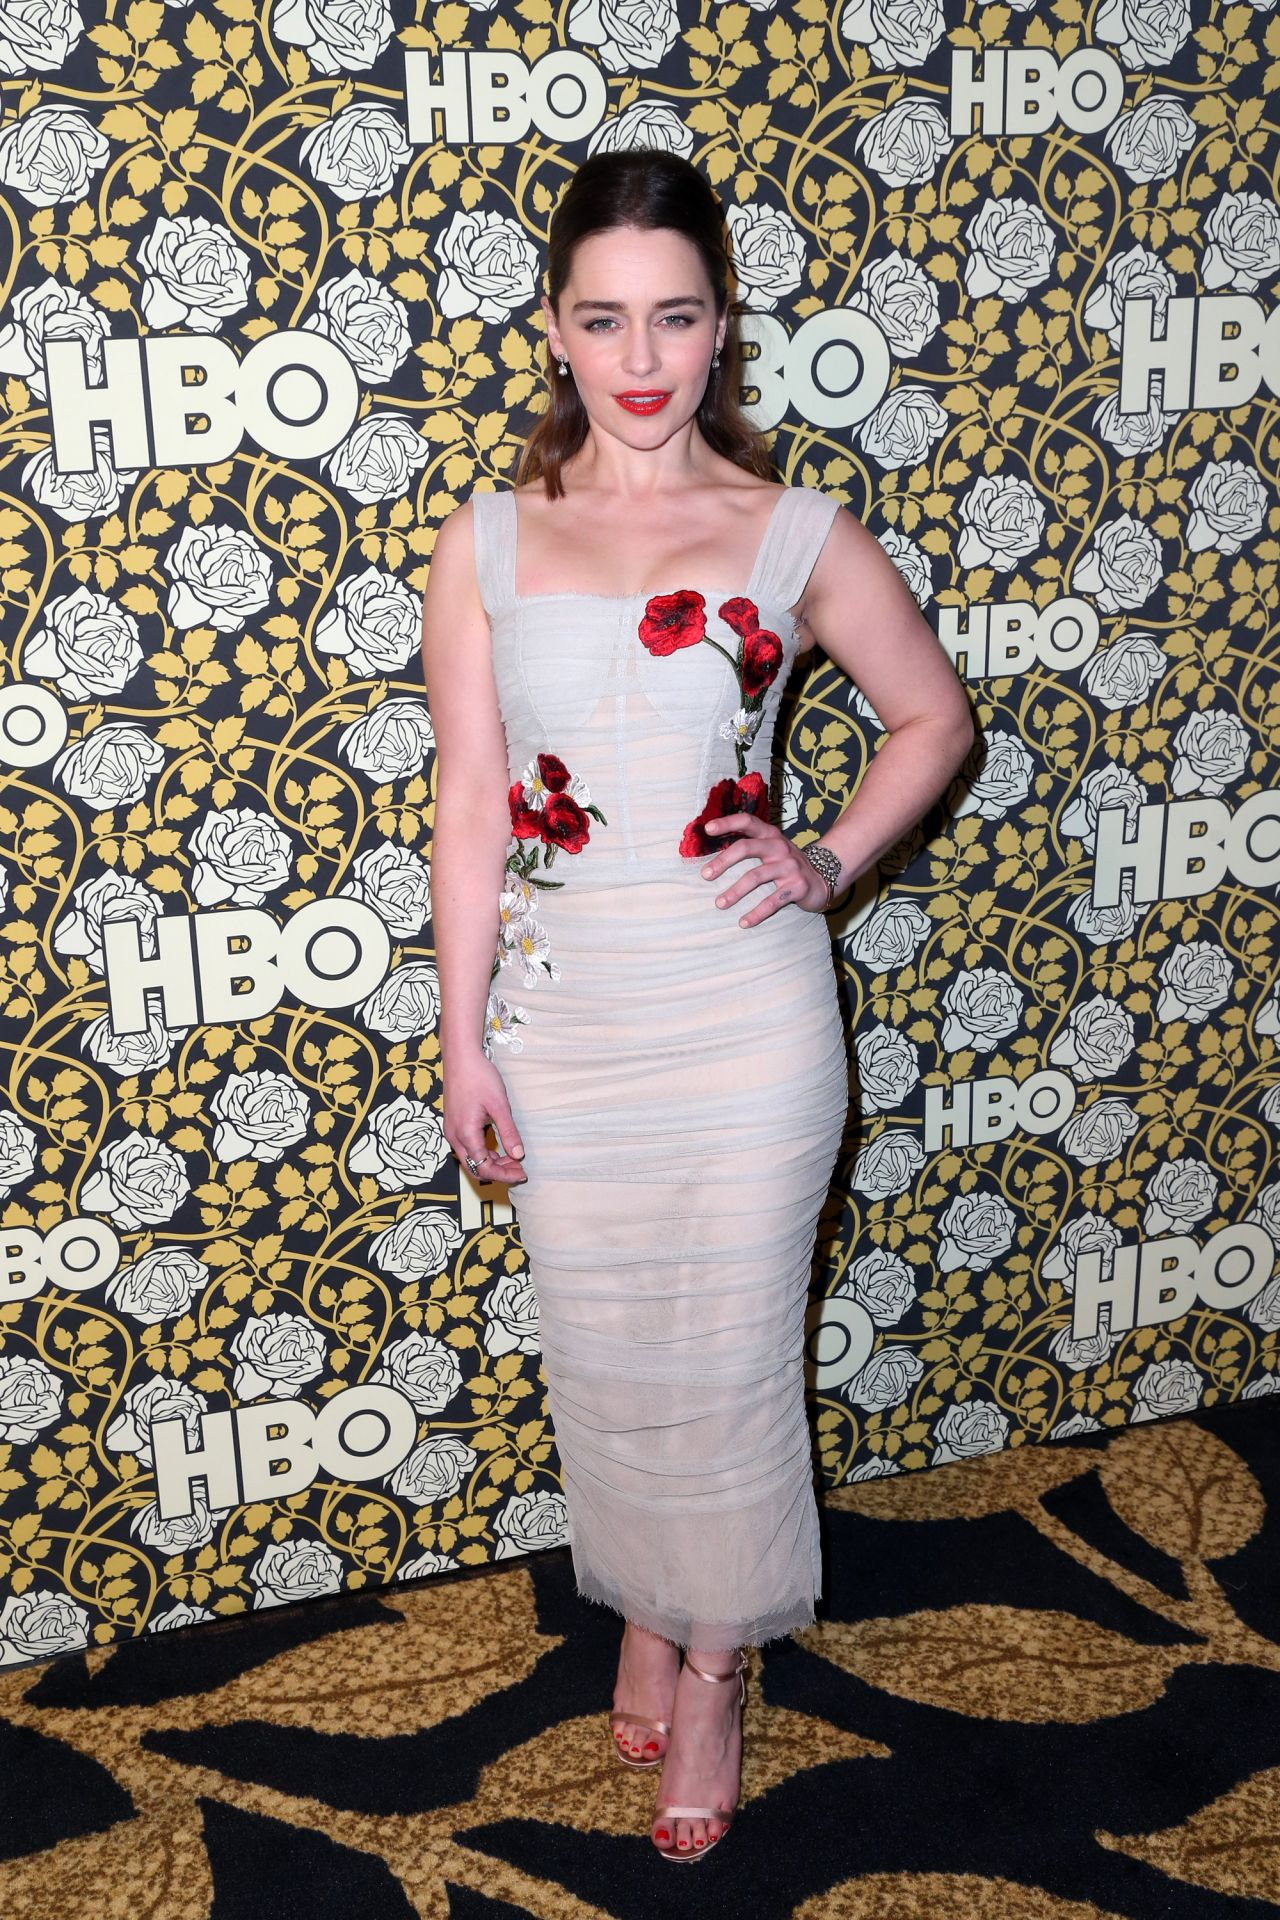 emilia-clarke-hbo-golden-globes-2016-afterparty-in-beverly-hills-2